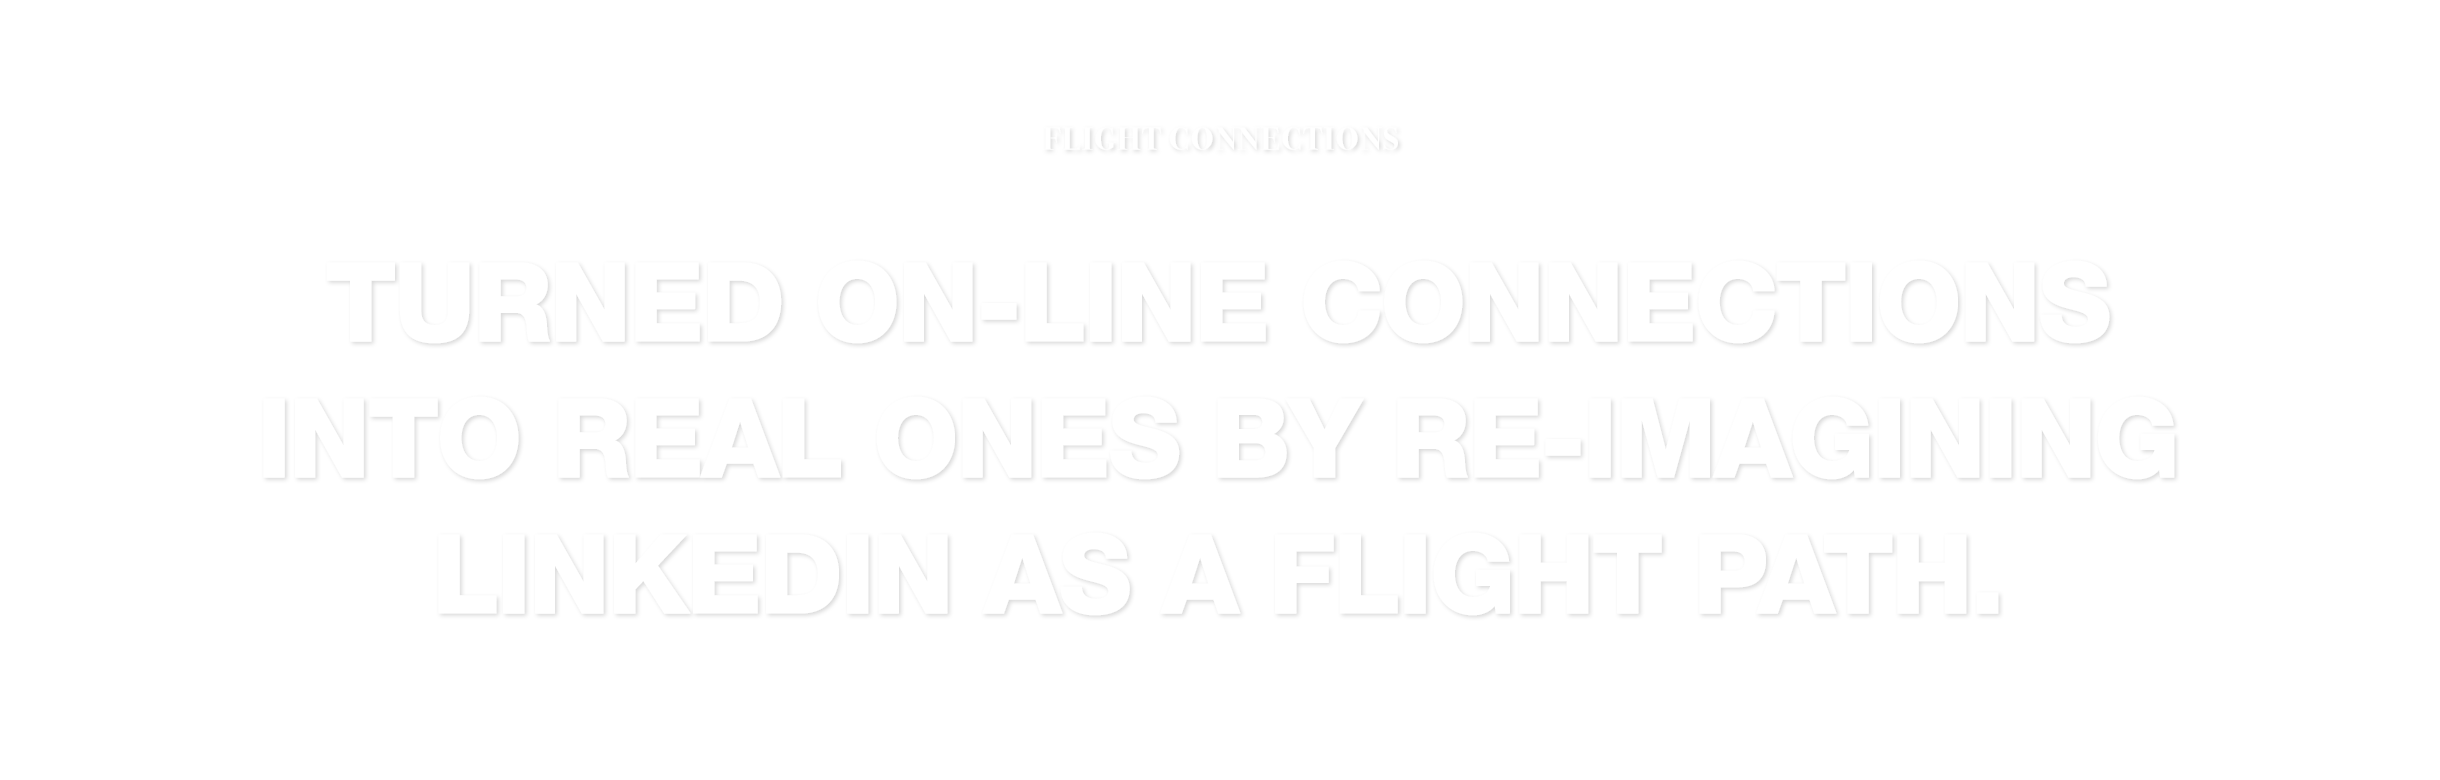 ANA – Flight Connections